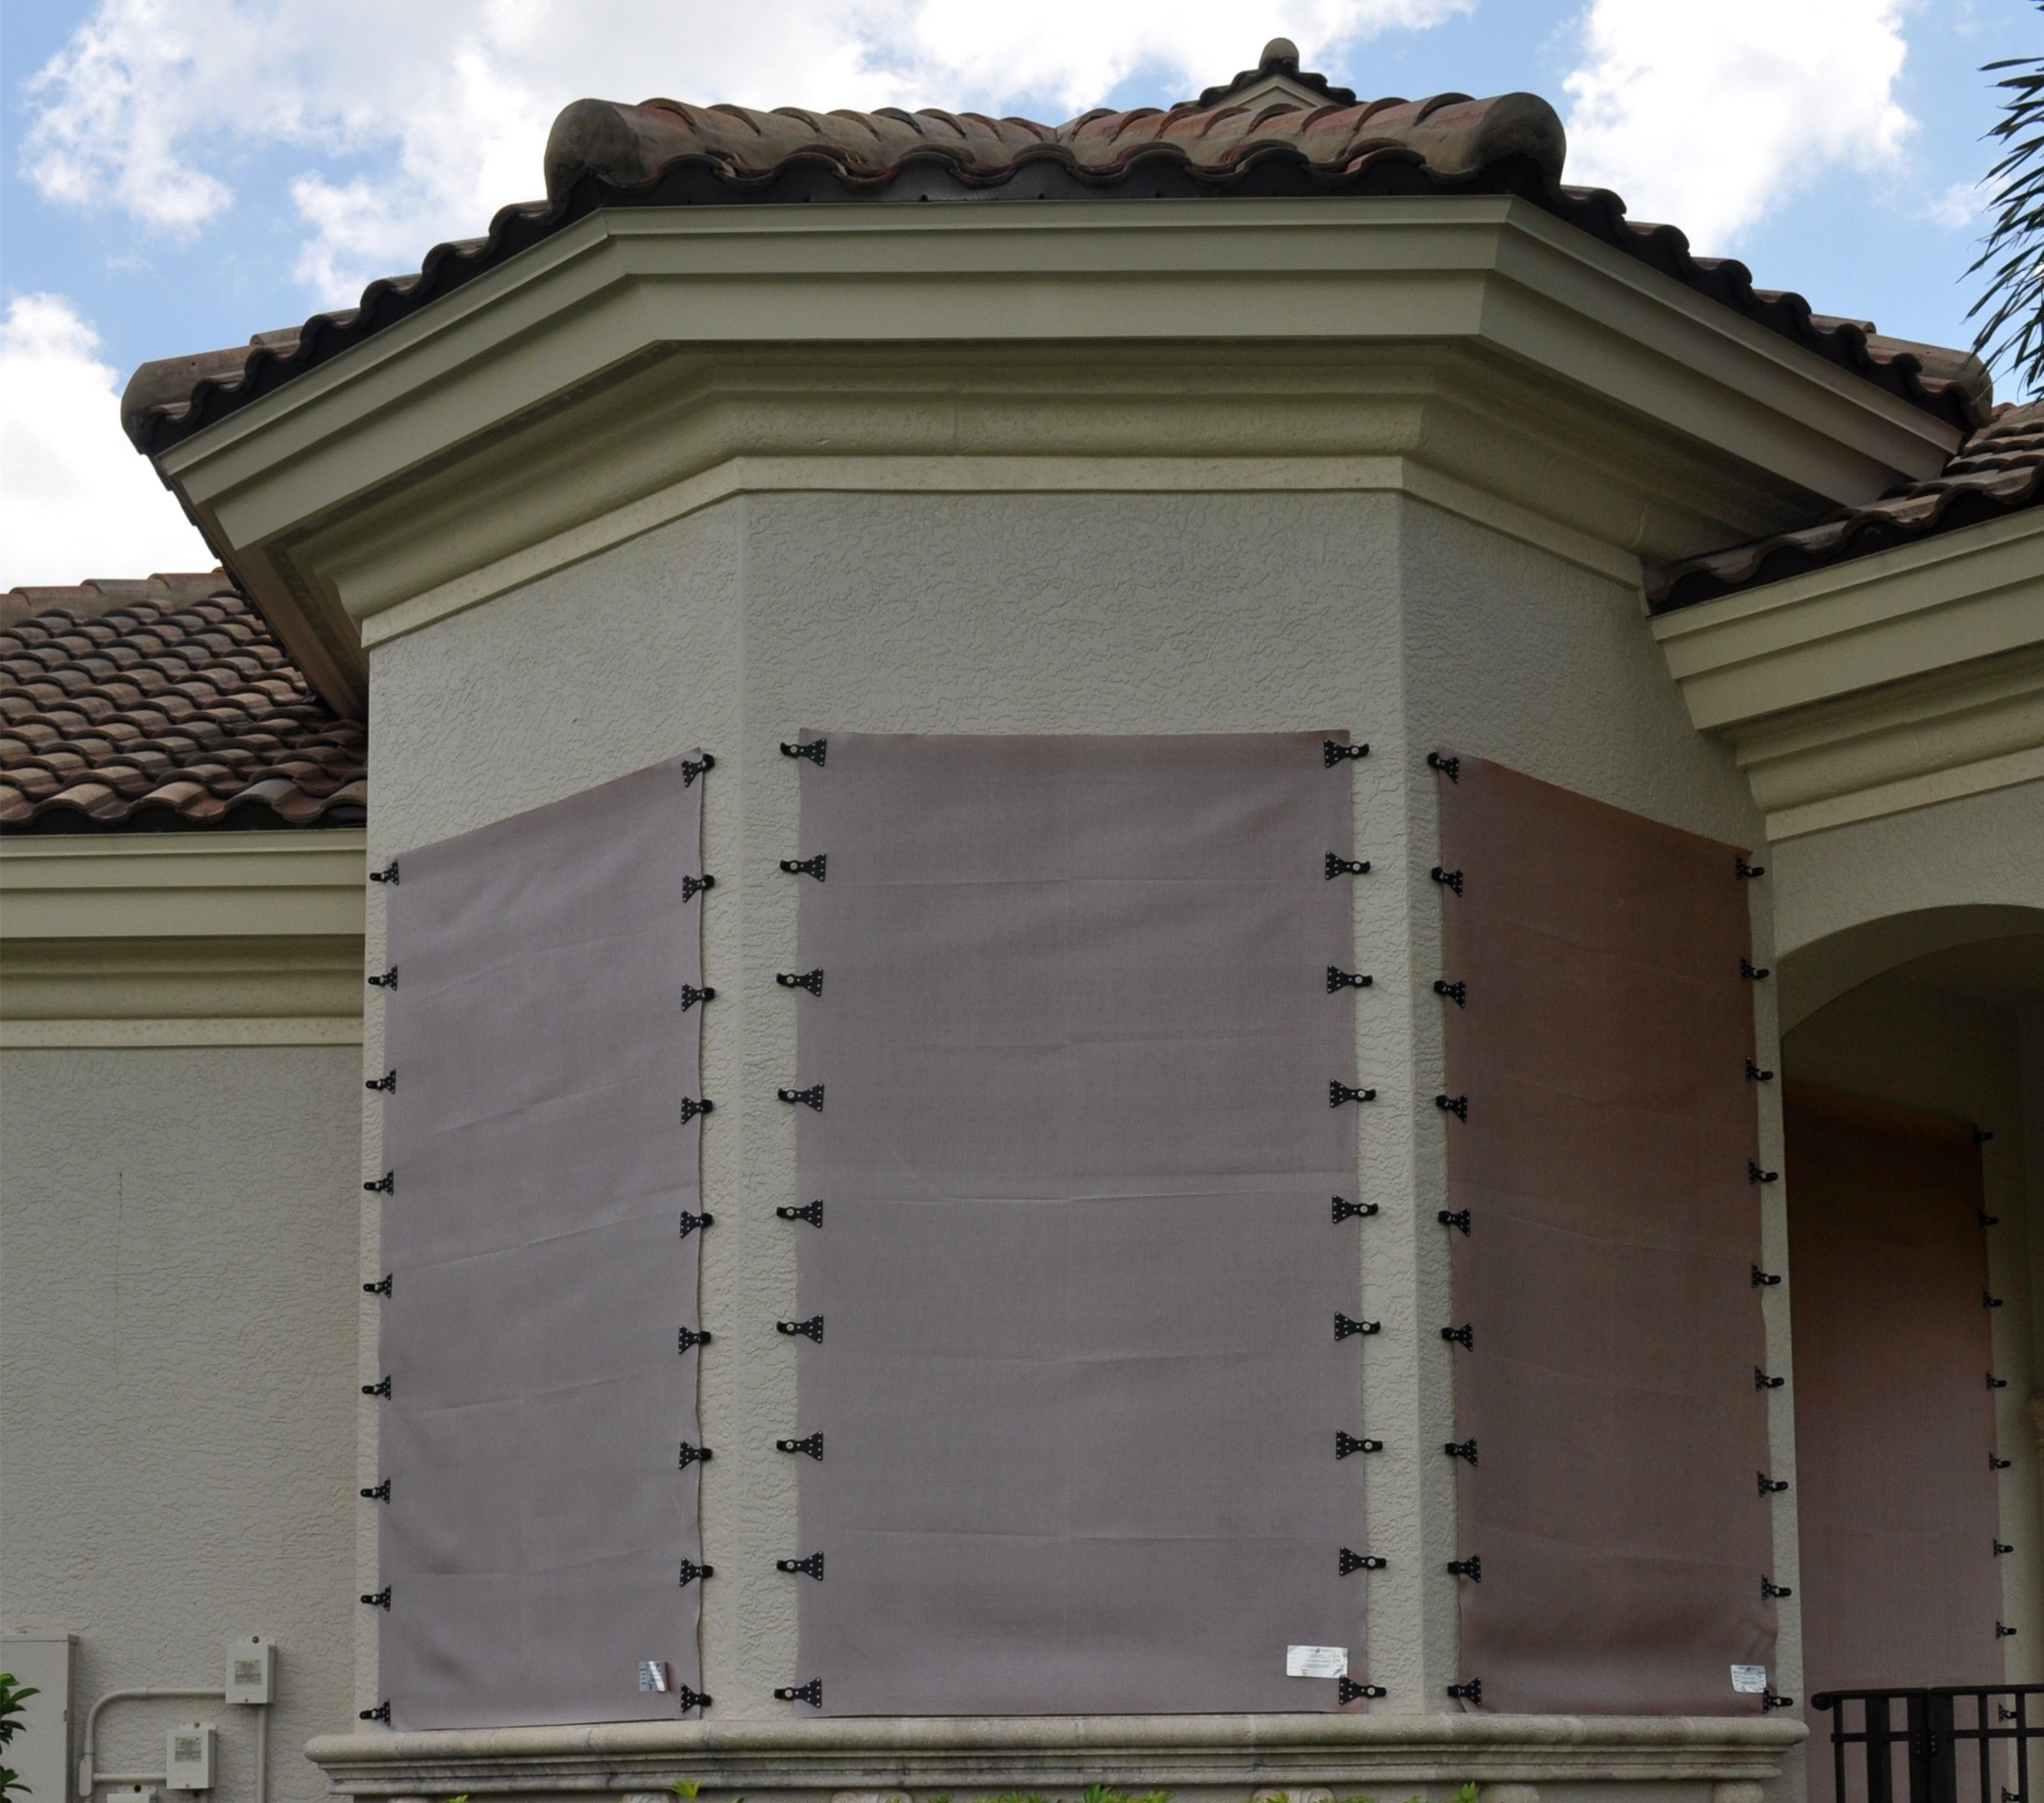 Hurricane Fabric Protection Shutters Storm Shutters Hurricane Panels Hurricane Windows Hurricane Panels Shutters